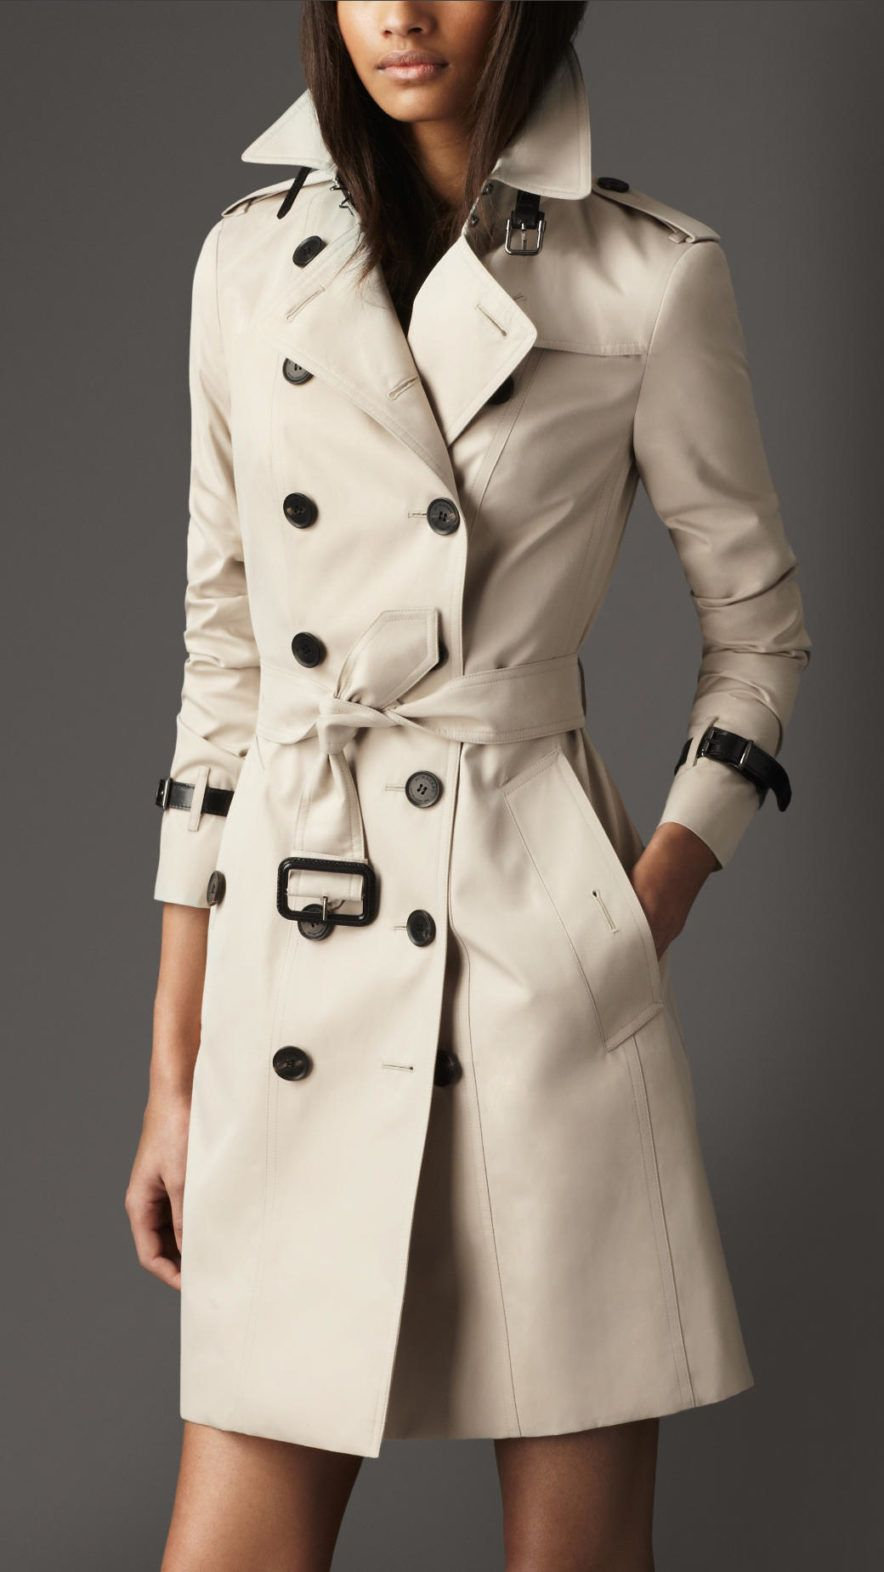 The Best Burberry Trench Coat Look Alikes For Every Budget Trench Coats Women Short Trench Coat Burberry Trench Coat [ 1572 x 884 Pixel ]